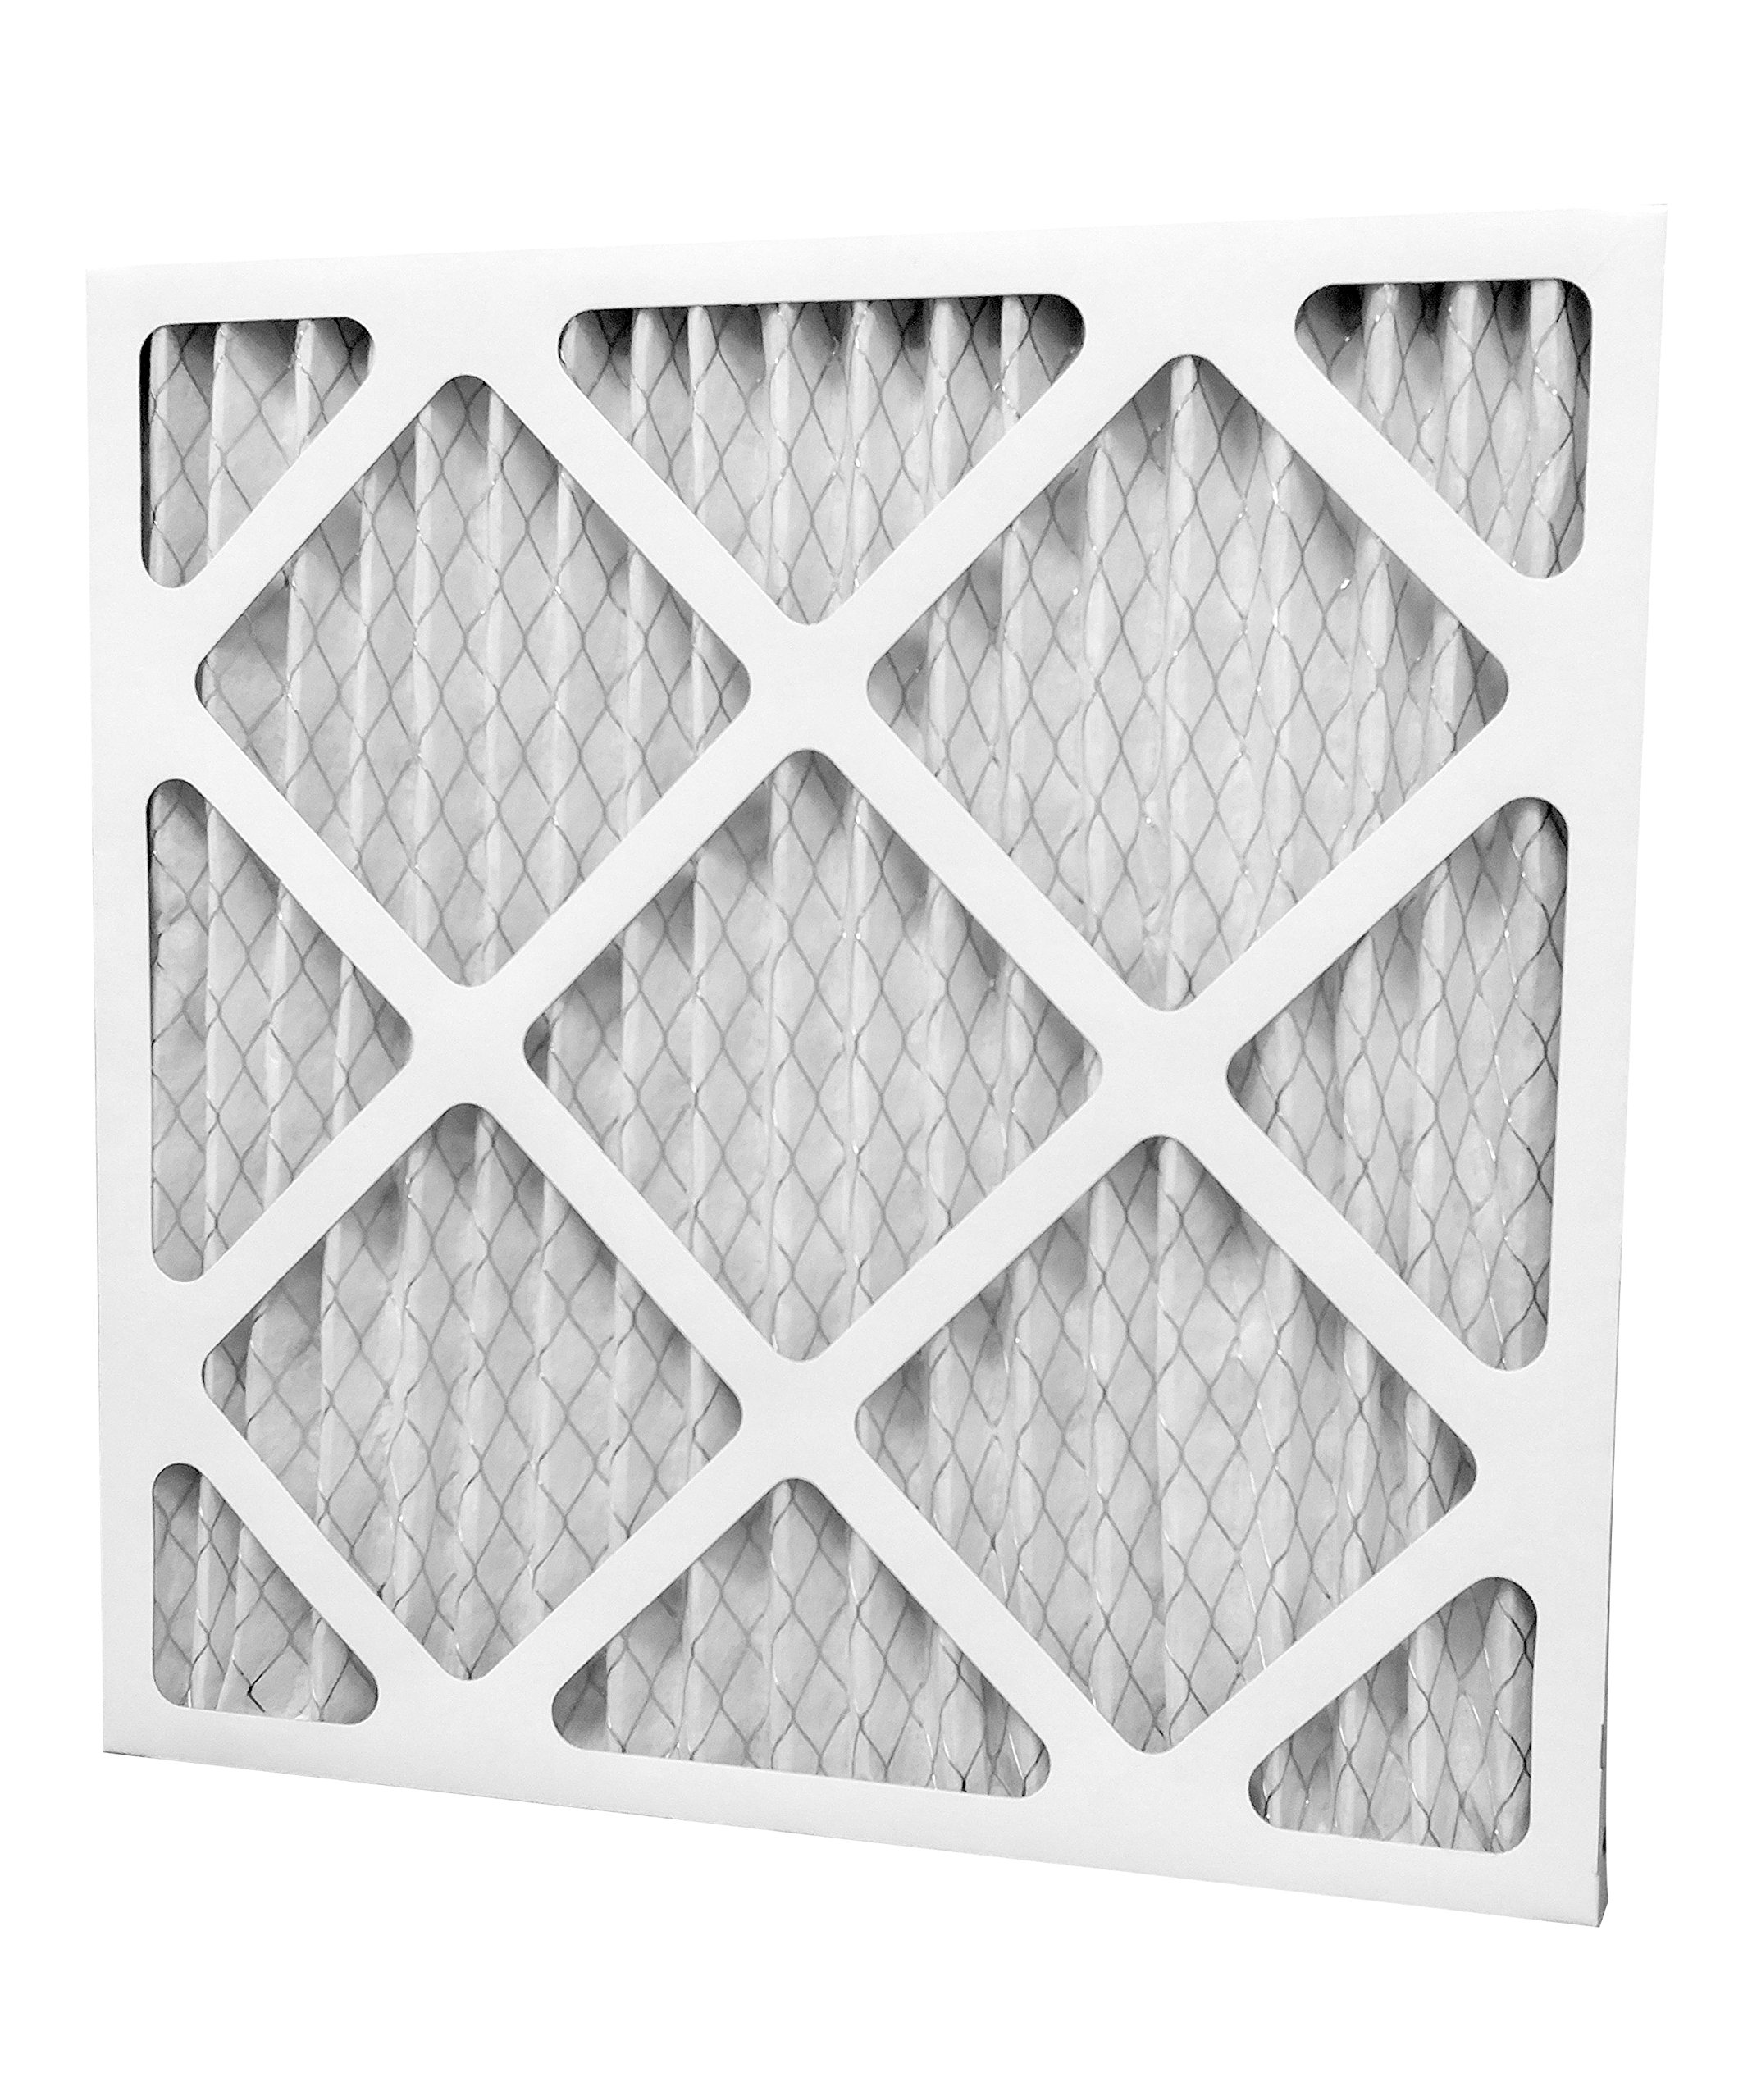 Janitized Dri-Eaz DefendAir Stage-2 Pre-Filter, 12 Piece by Janitized